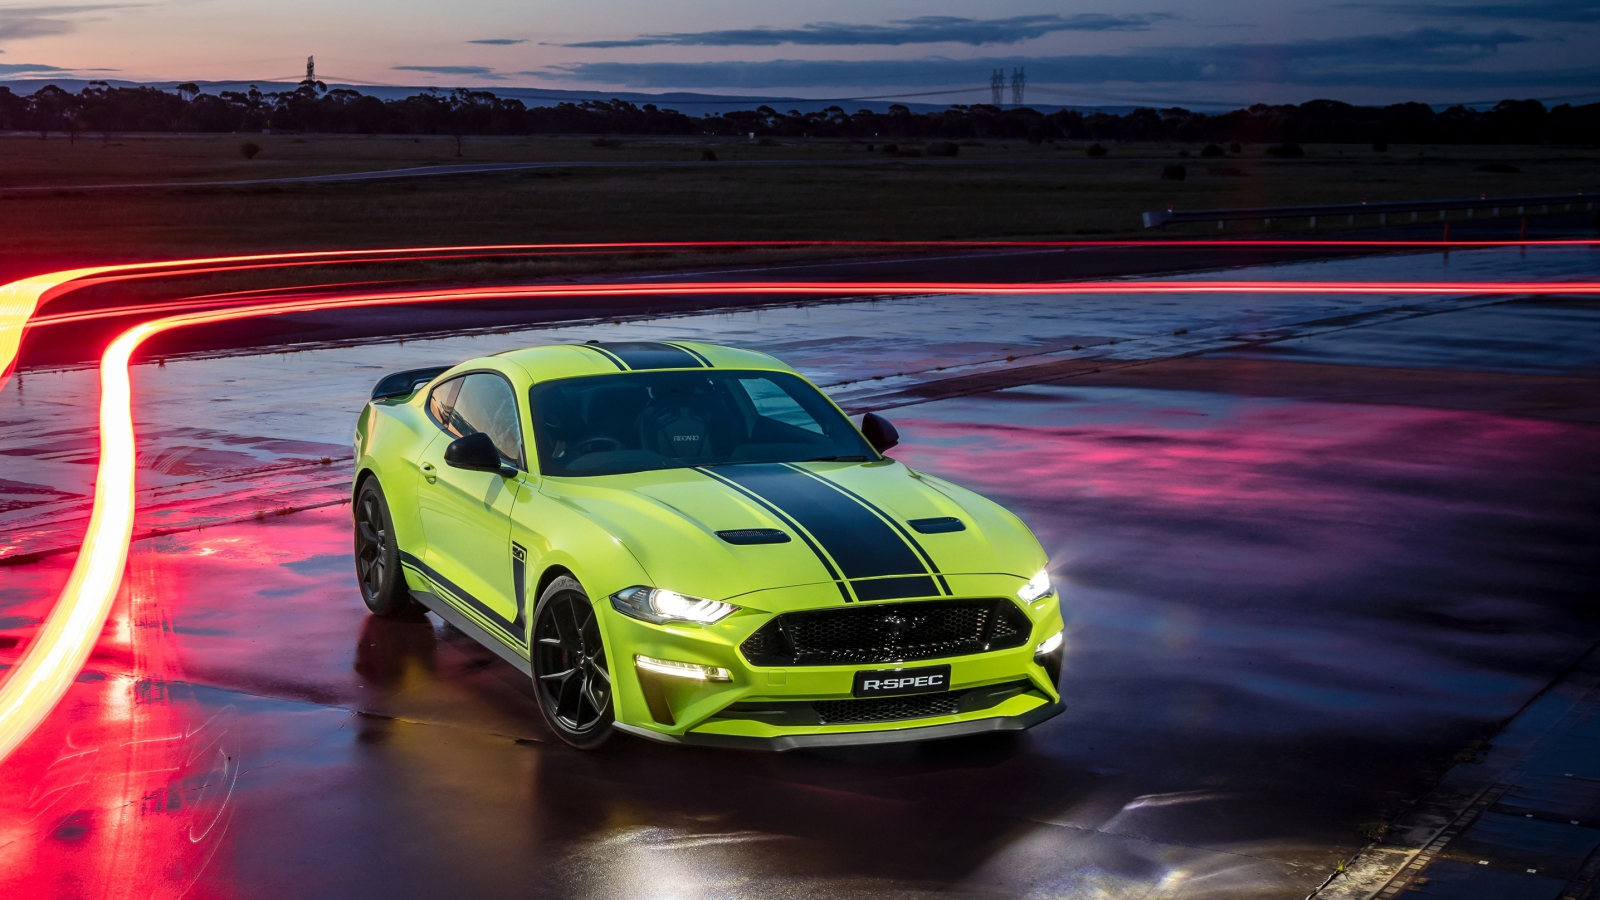 Download 1600x900 Wallpaper Ford Mustang Gt Fastback Sports Car 2019 Widescreen 16 9 Widescreen 1600x900 Hd Image Background 23115